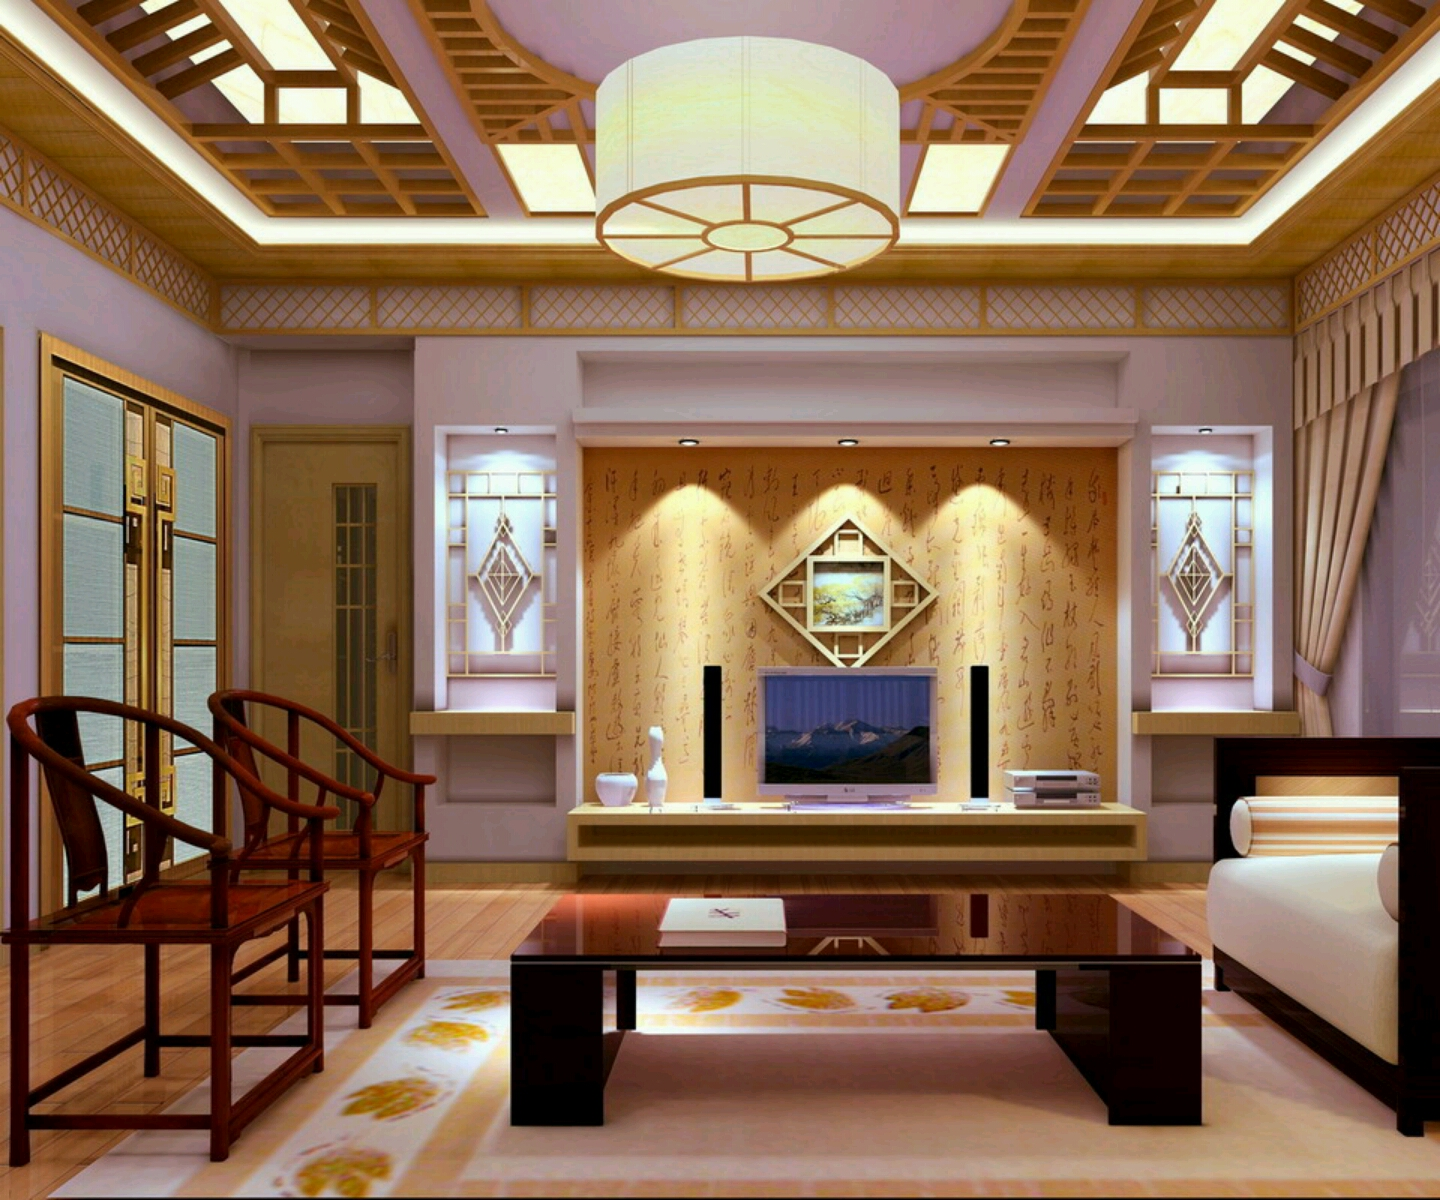 New home designs latest homes interior designs studyrooms for Small indian house interior design photos